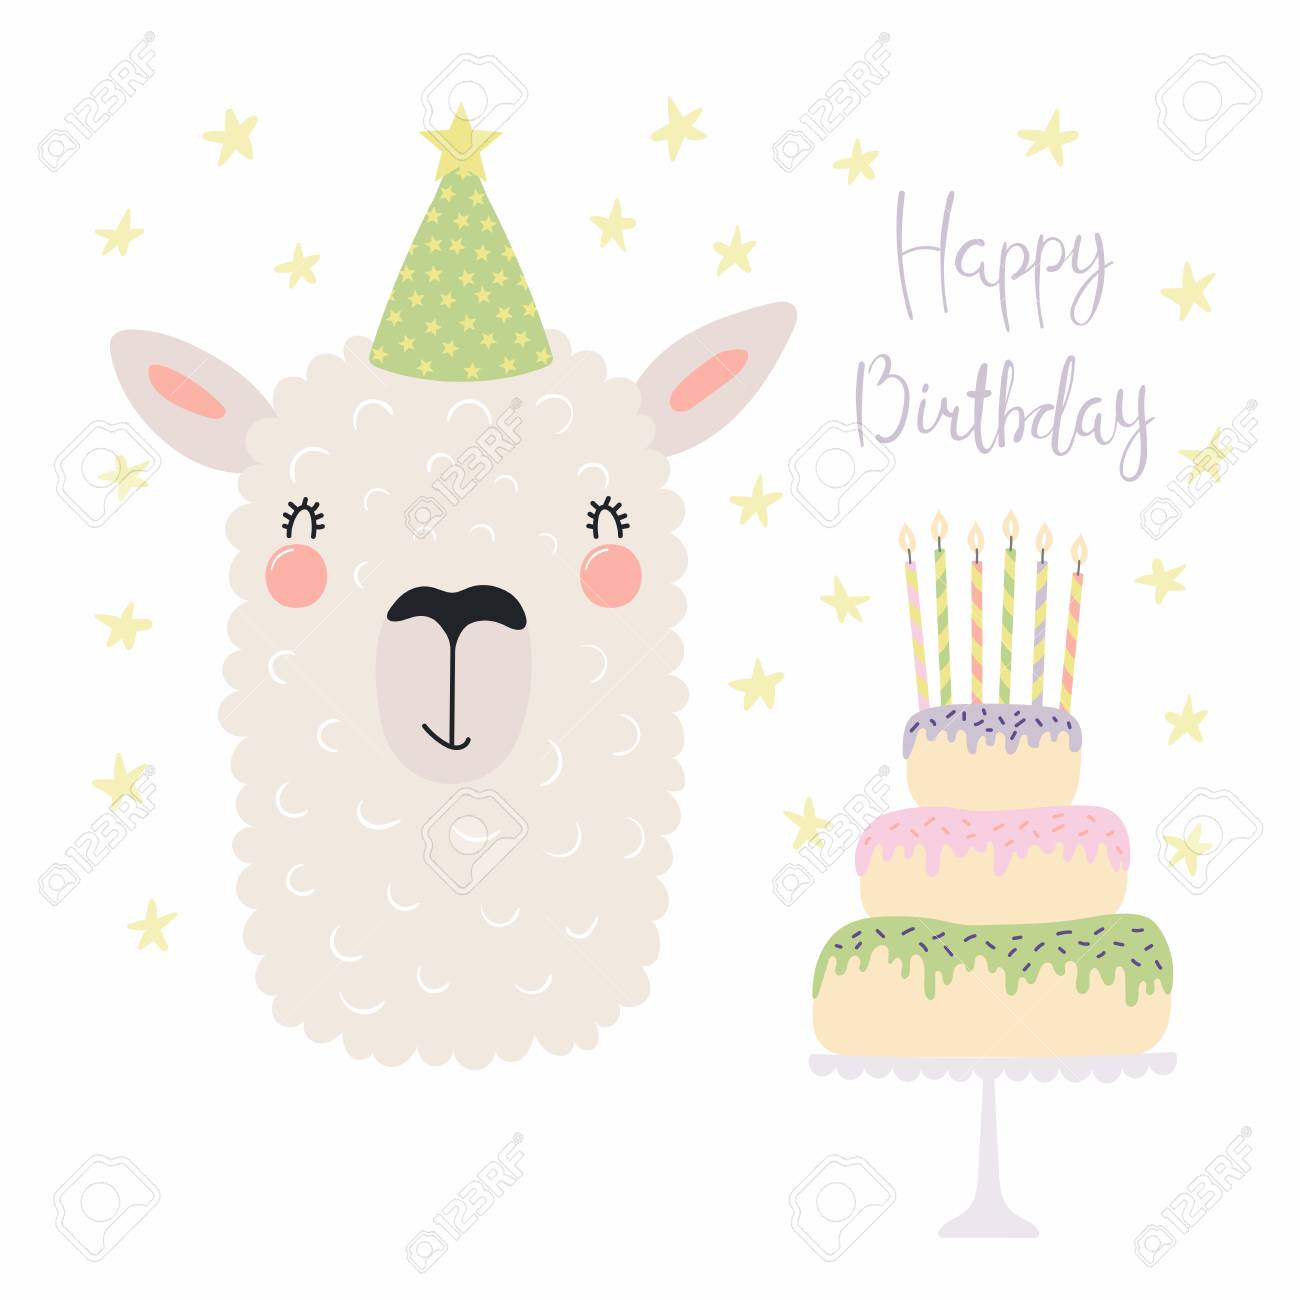 Hand Drawn Birthday Card With Cute Funny Llama In A Party Hat Cake Candles